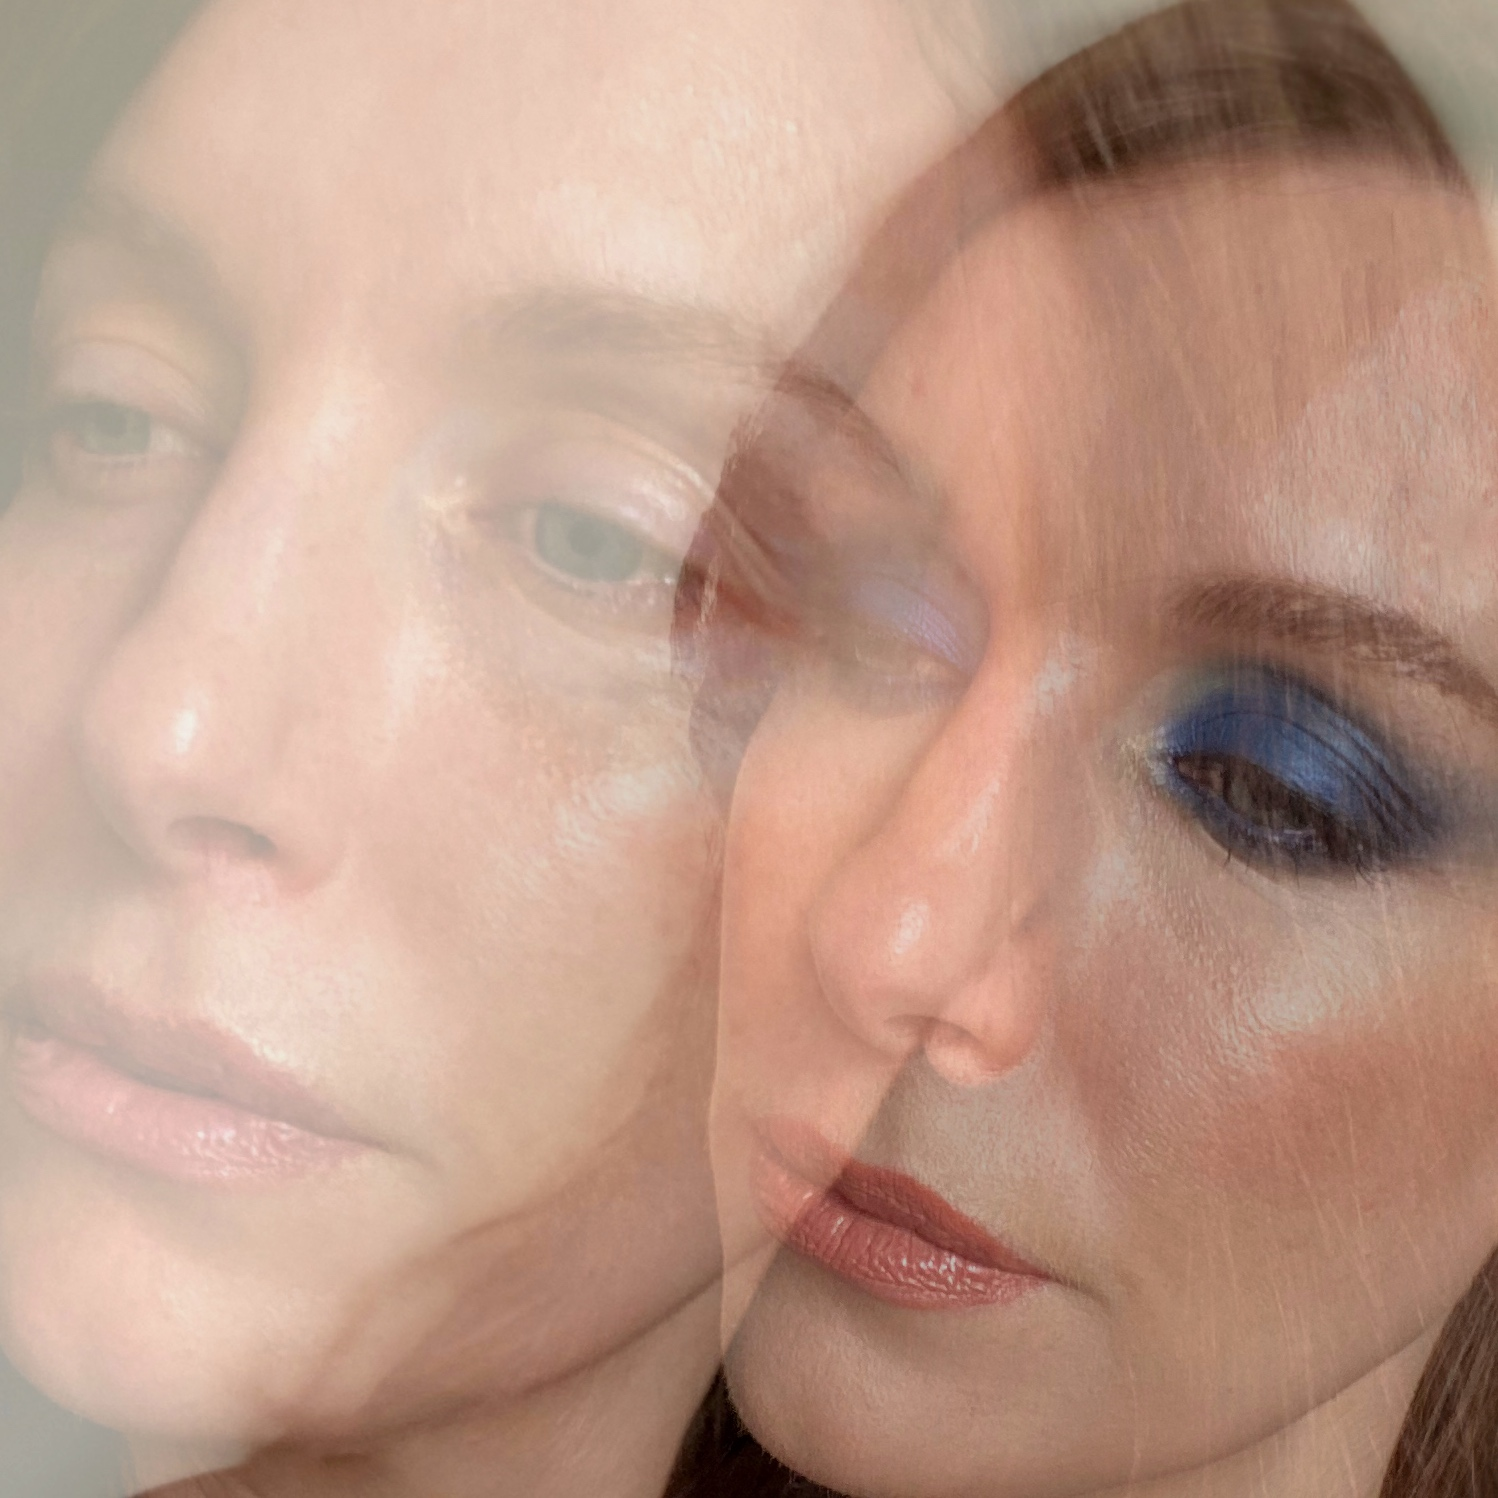 Two images of Amy superimposed over one another. In one image Amy is wearing bright blue eye makeup. In the other Amy is makeup free.